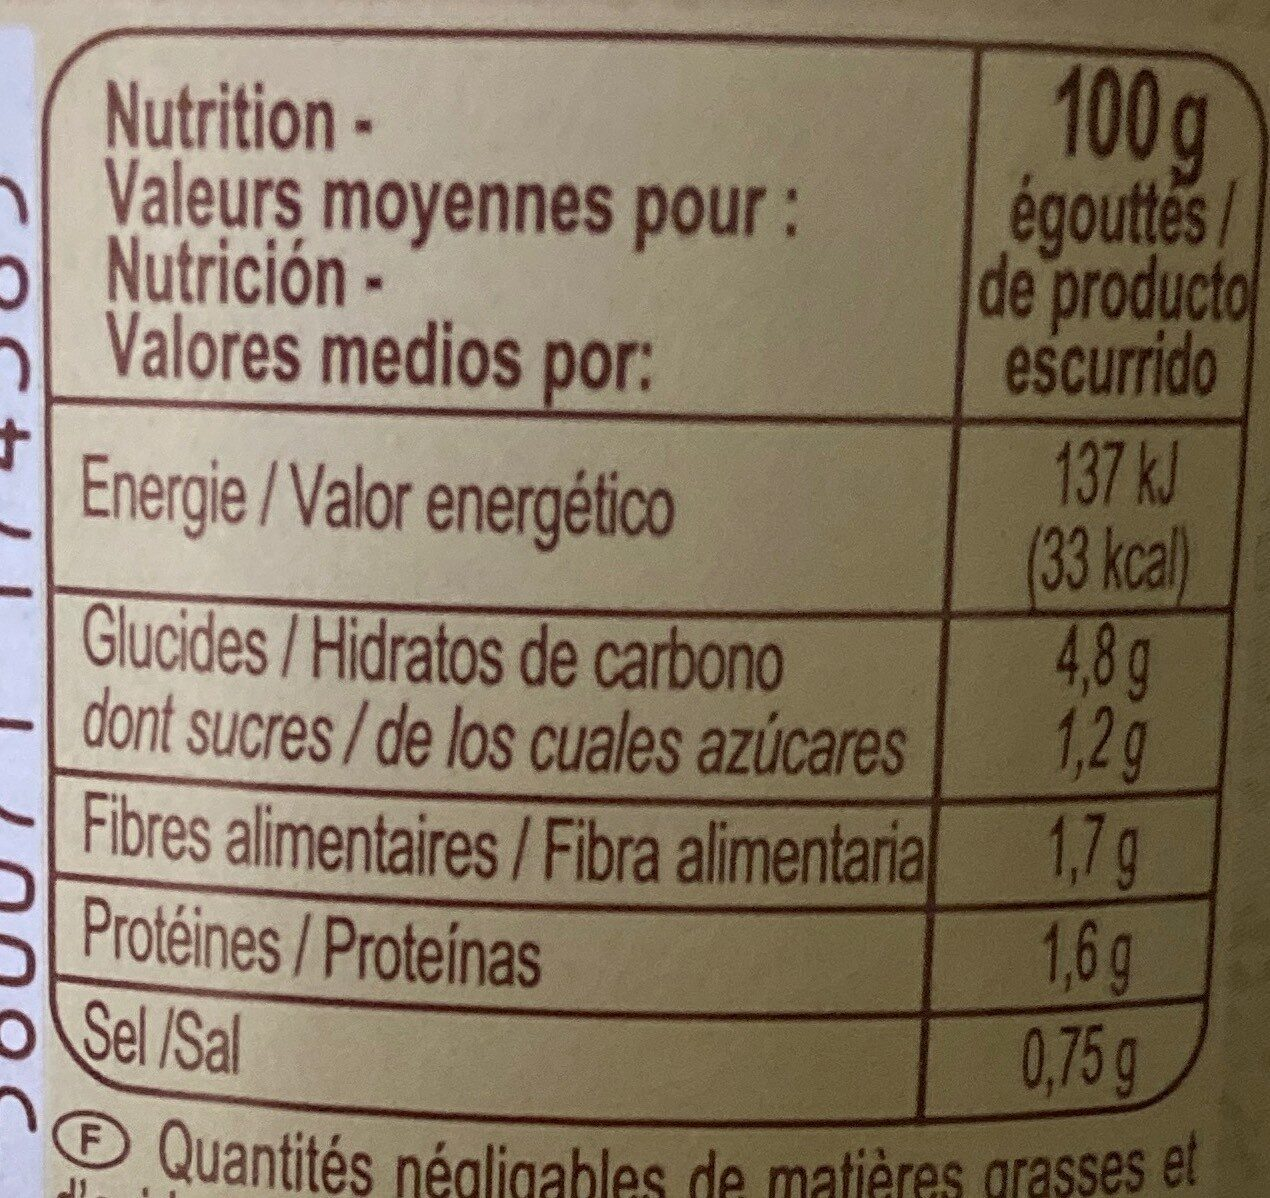 Coeur d'artichaut - Nutrition facts - fr